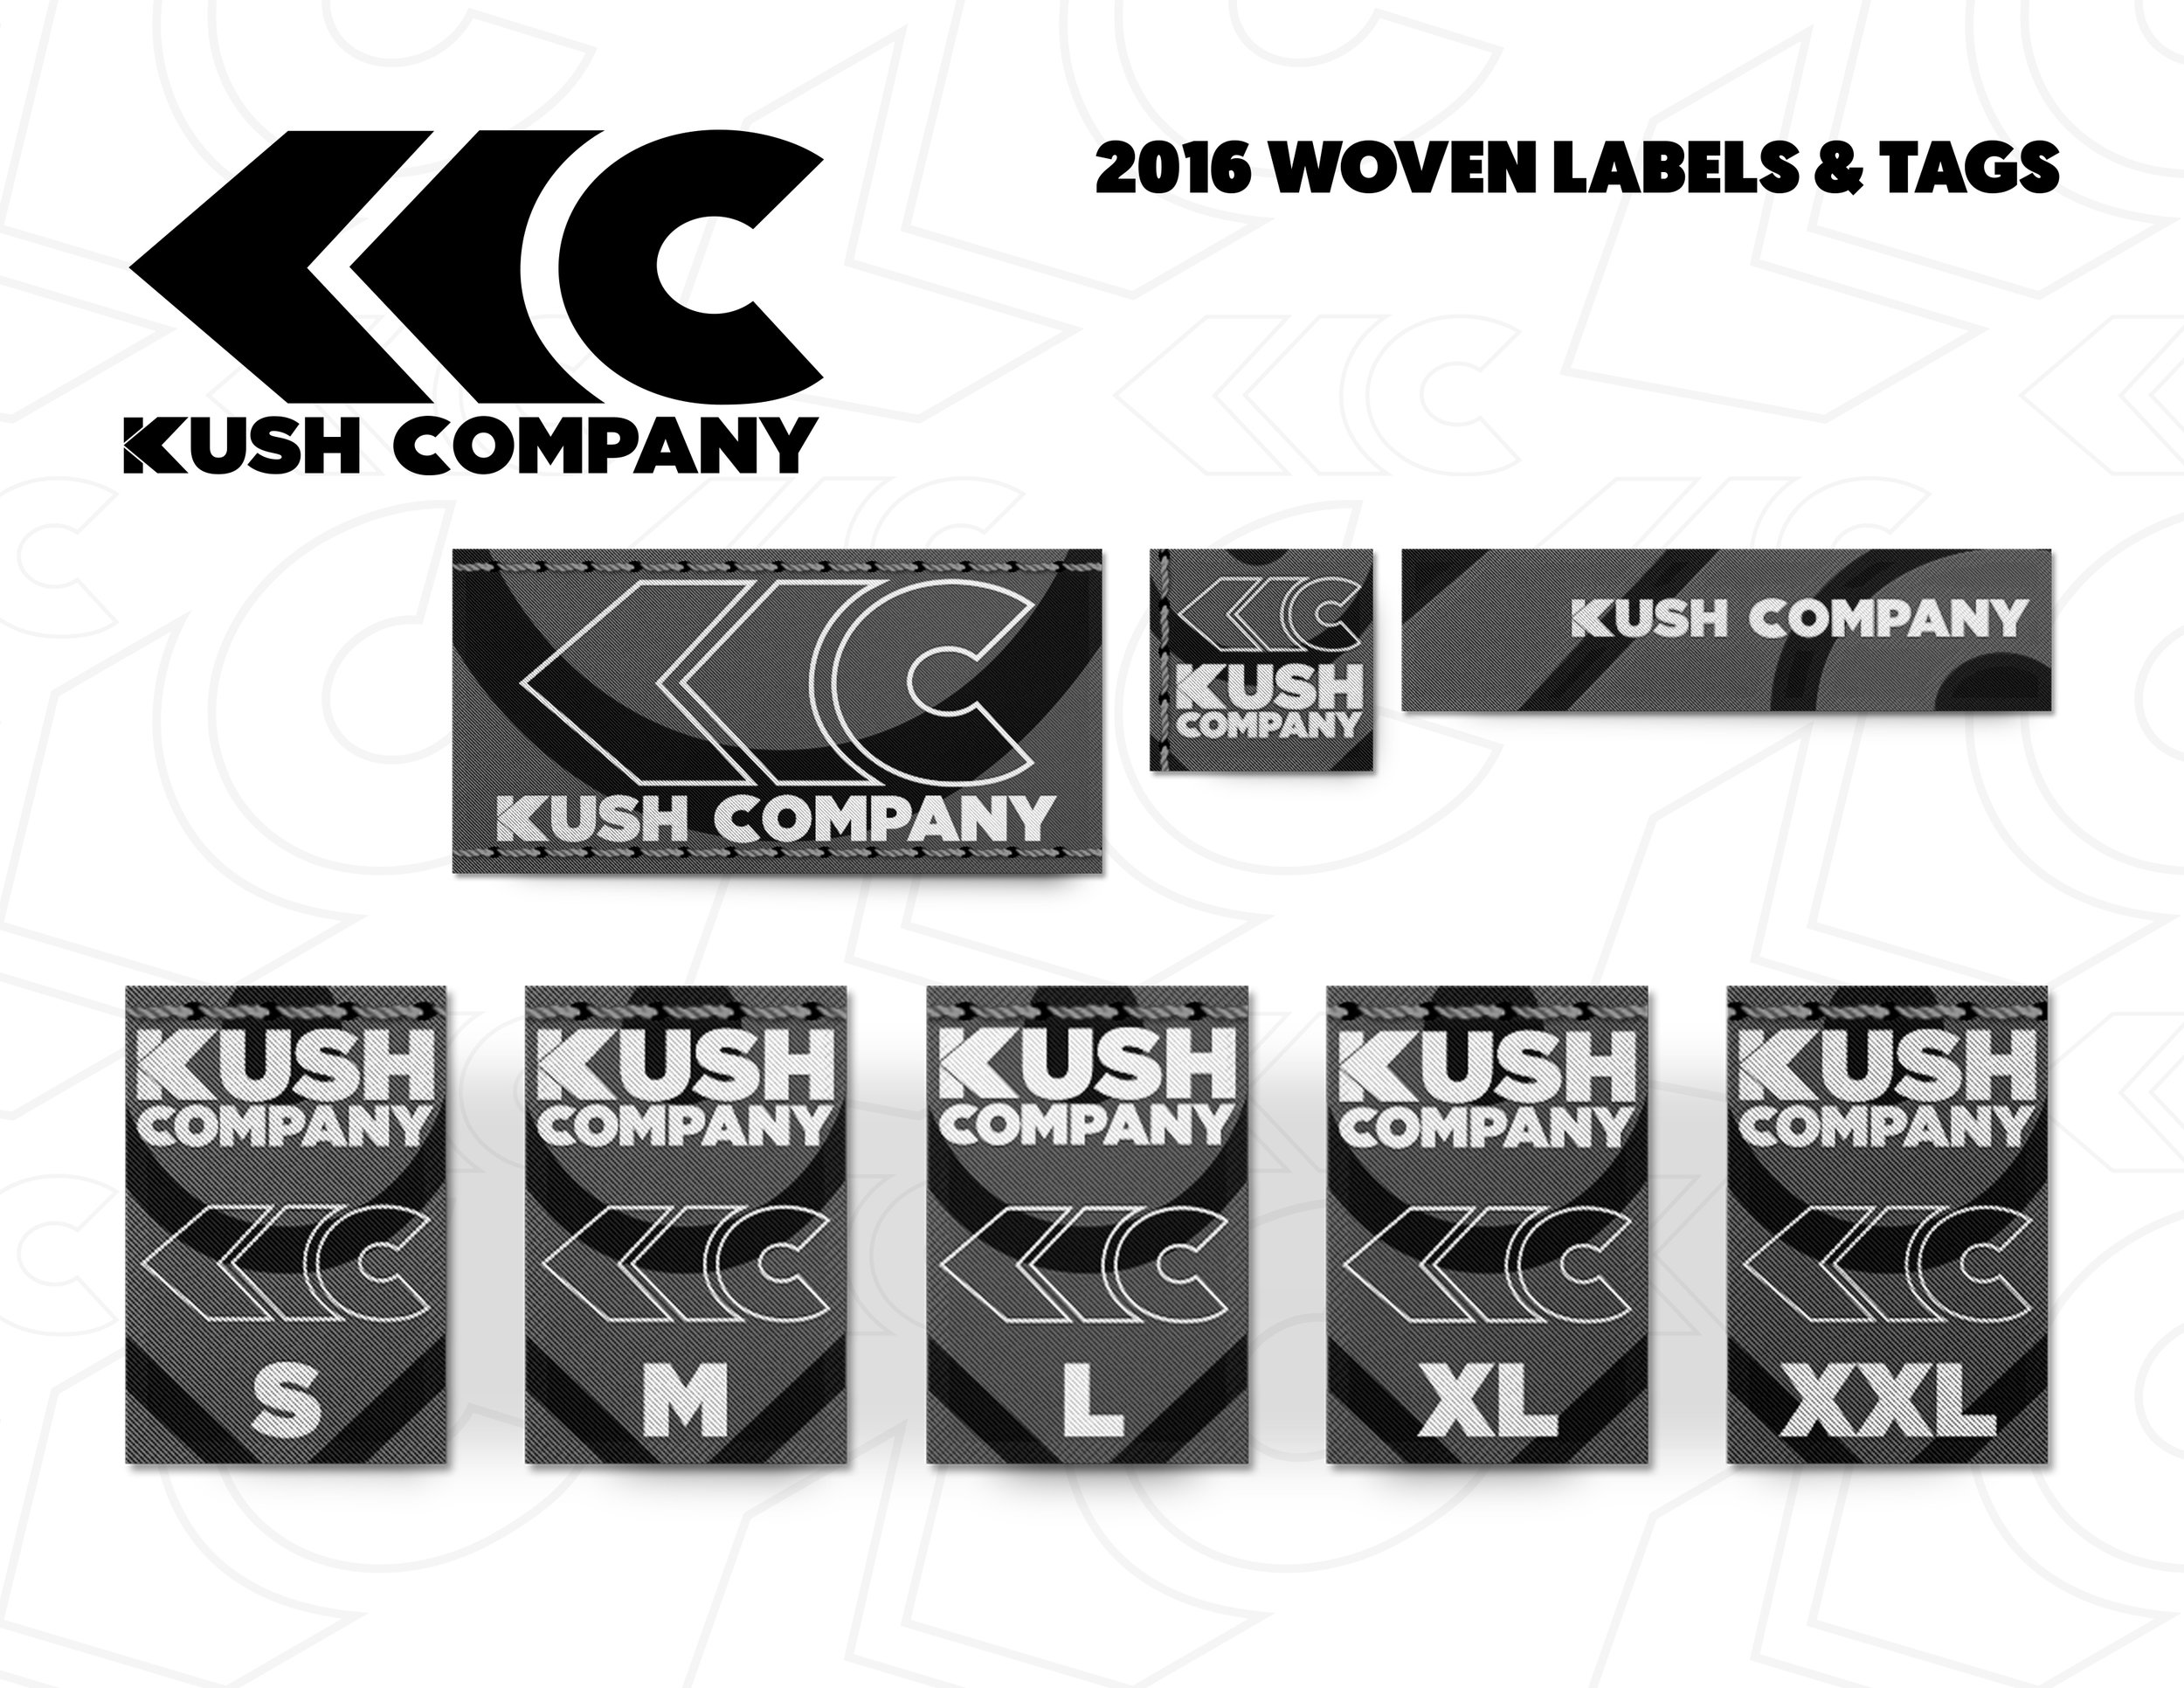 Kush-Co-Woven-Labels.jpg